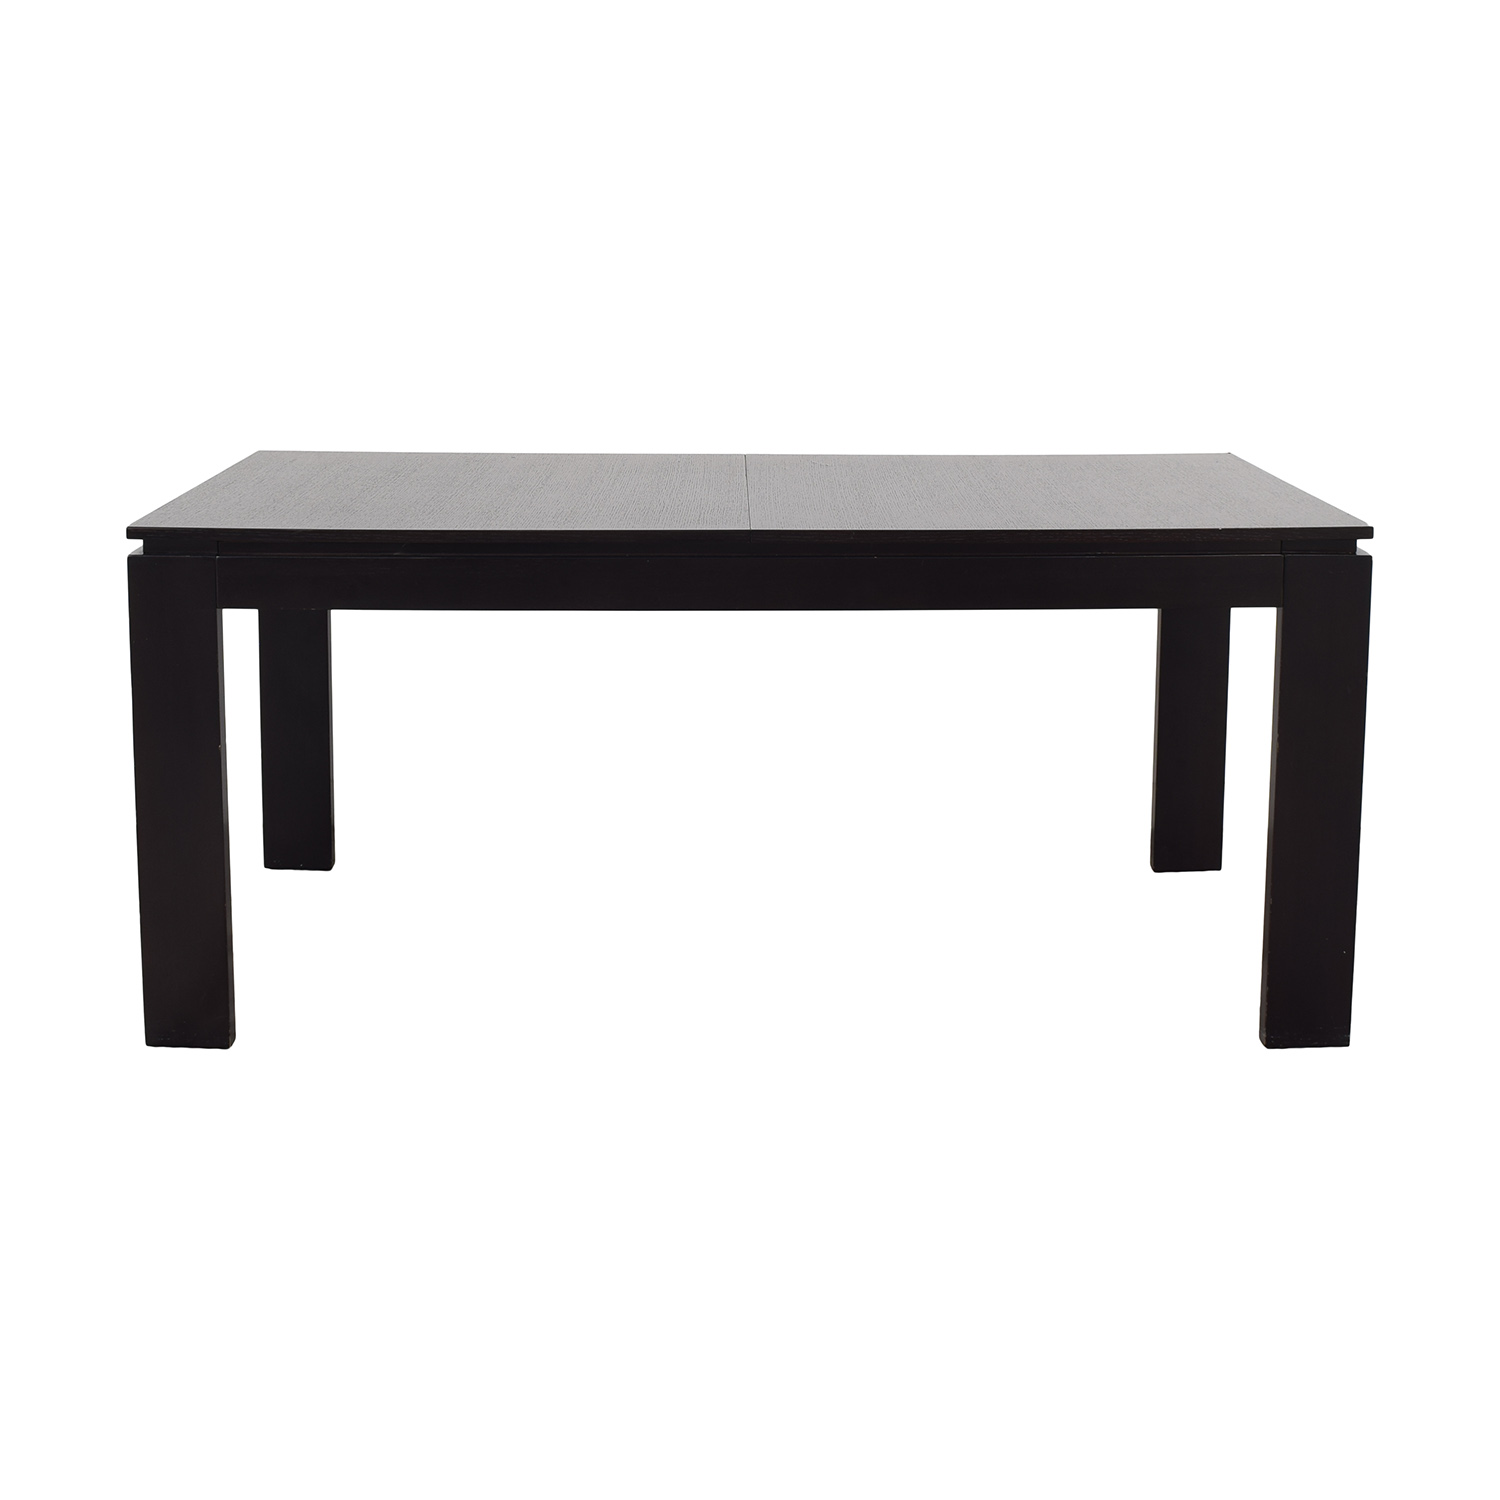 CB2 CB2 Wenge Expandable Dining Table dimensions